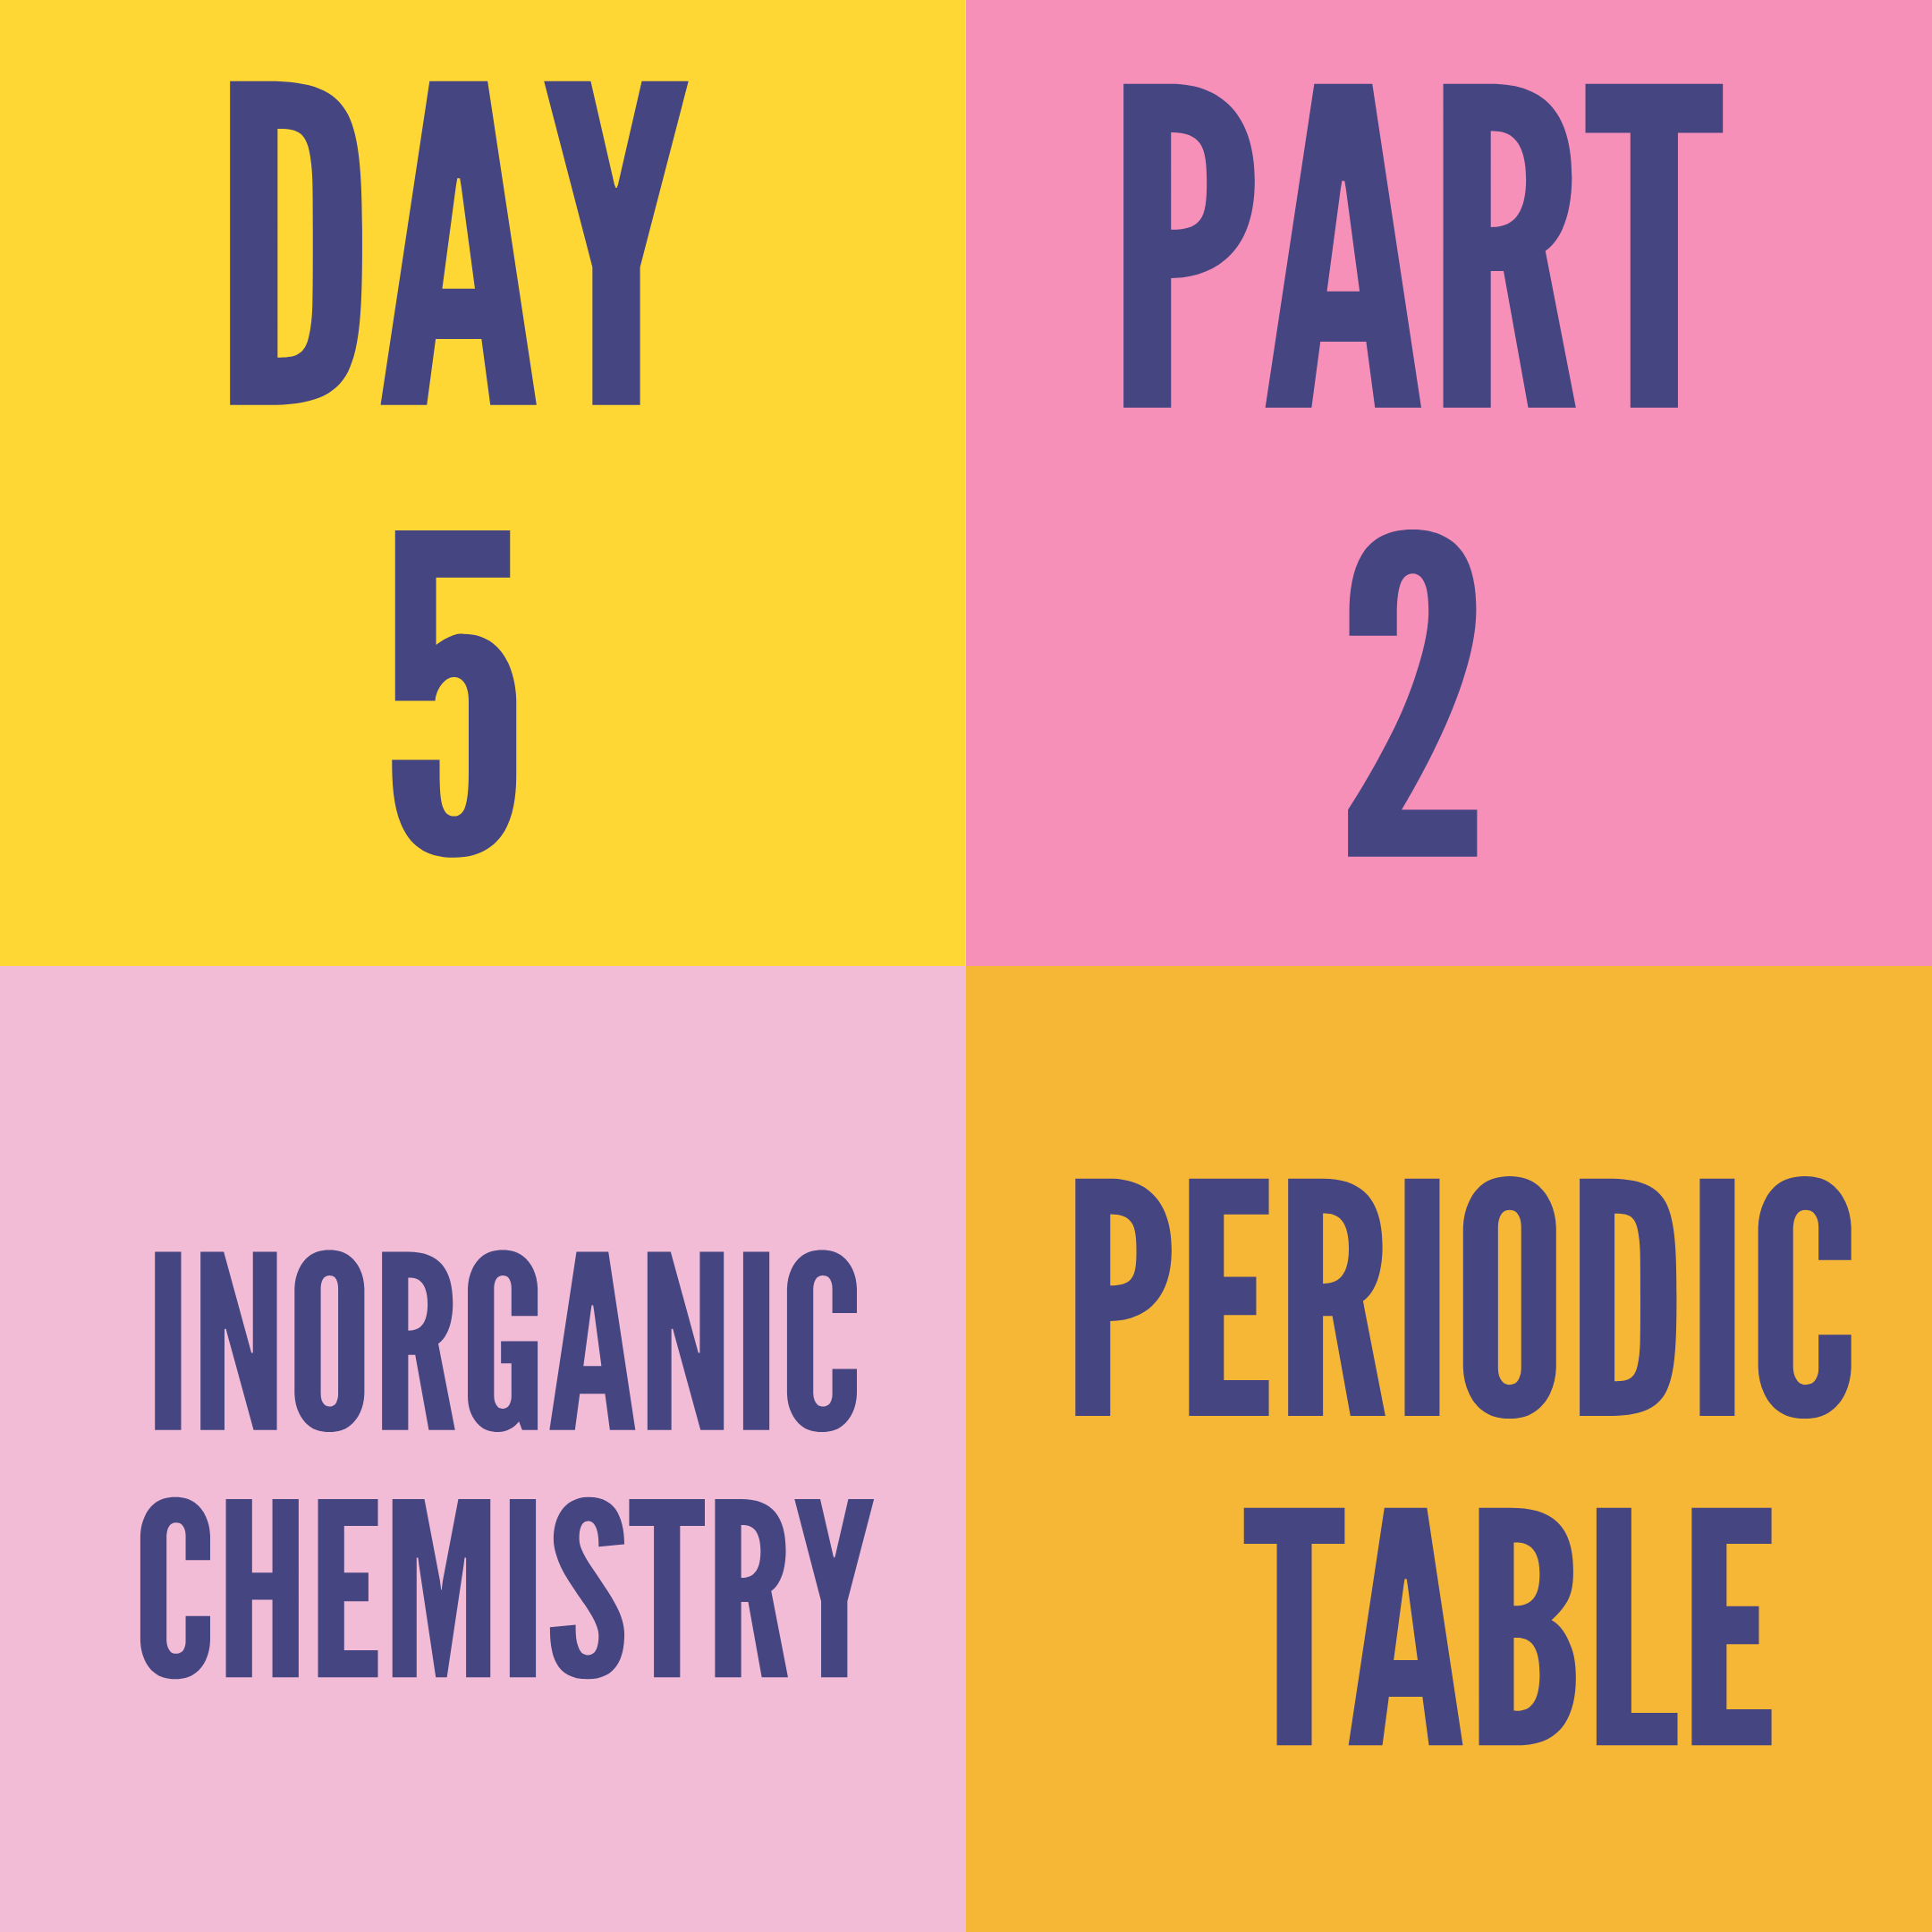 DAY-5 PART-2 PERIODIC TABLE